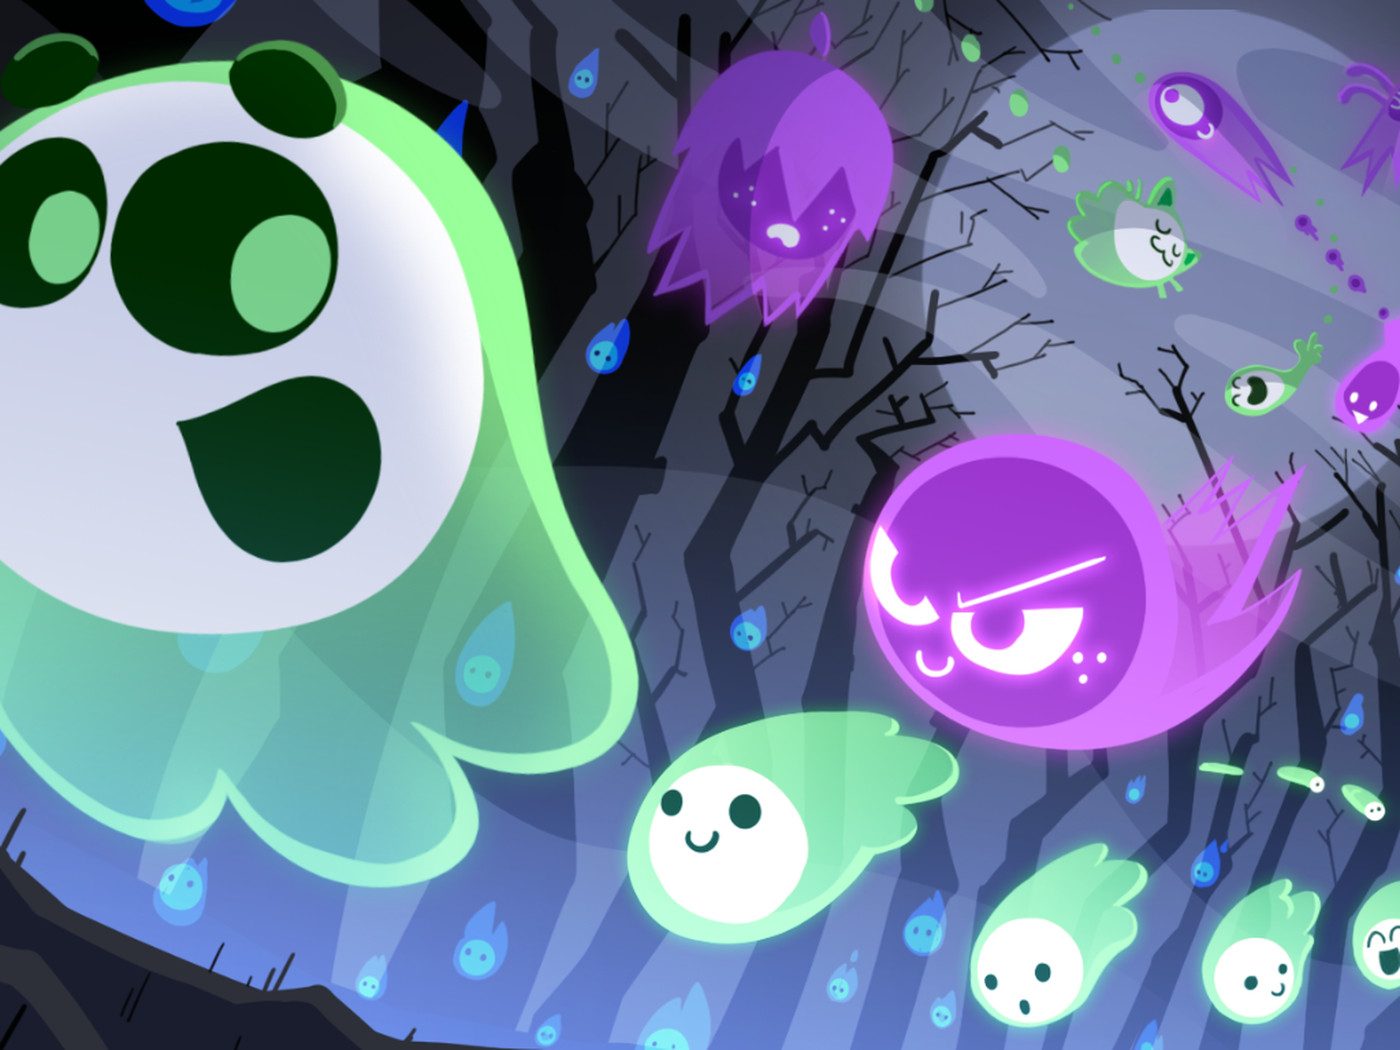 google s 2018 halloween doodle is also its first multiplayer game the verge google s 2018 halloween doodle is also